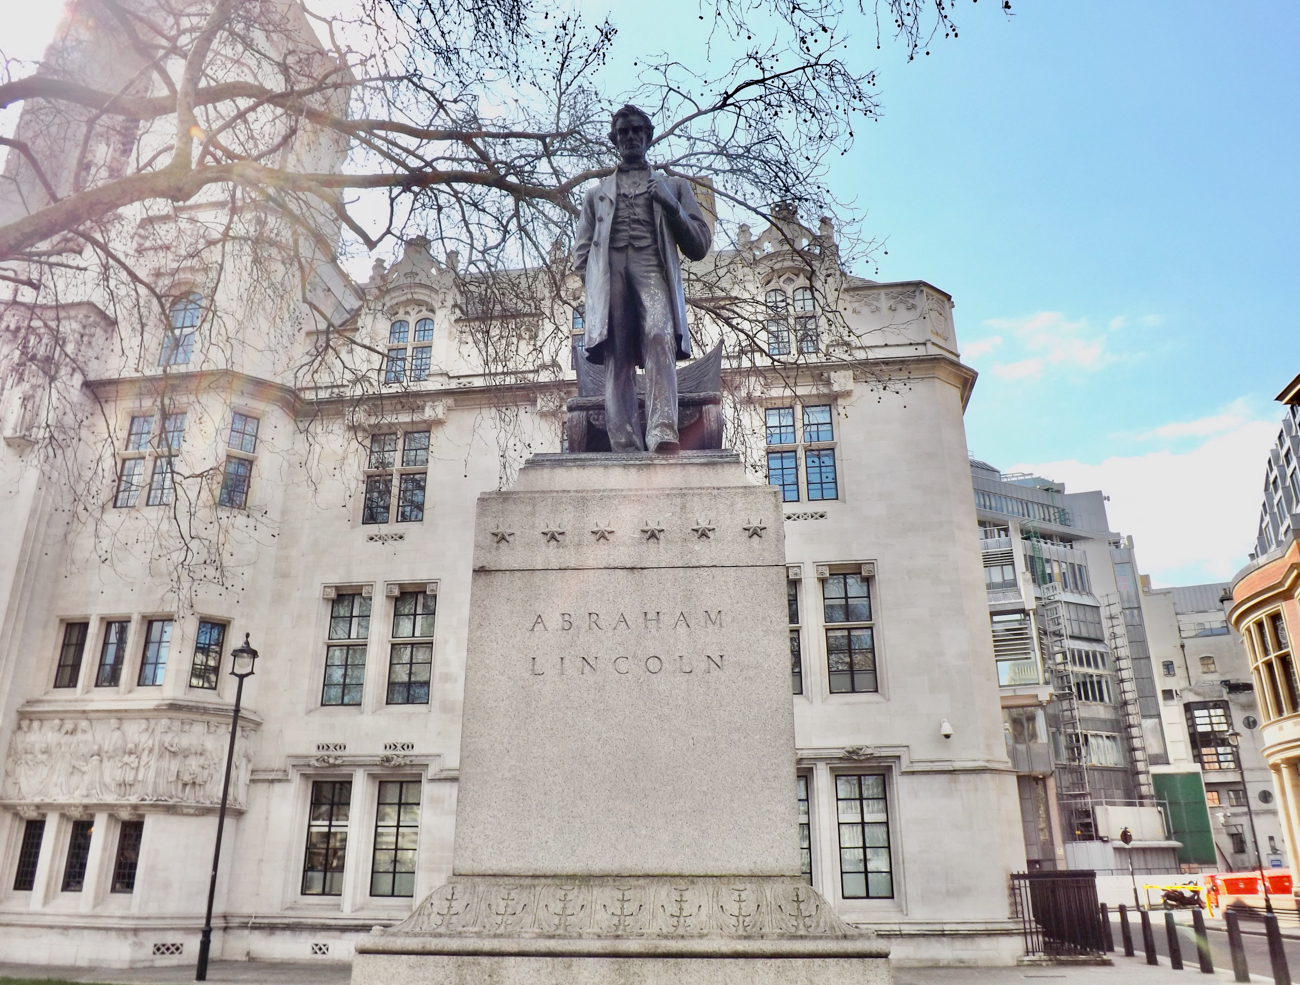 FACT #21: A replica was almost sent to London / DETAILS: London was in talks to receive a replica of Barnard's statue. It was planned to join a series of other statues in an area one block north of Westminster Abbey. However, officials chickened out when it received high-profile criticism and opted for a more pristine, heroic depiction of Lincoln instead (pictured). The replica statue was sent to Manchester, England where it stands today at 19 Brazennose Street. / SOURCE: 'George Grey Barnard's Controversial Lincoln' by Harold E. Dickson for Art Journal Vol. 27, No. 1 (1967) / Image: Myles Foale // Published: 4.2.20